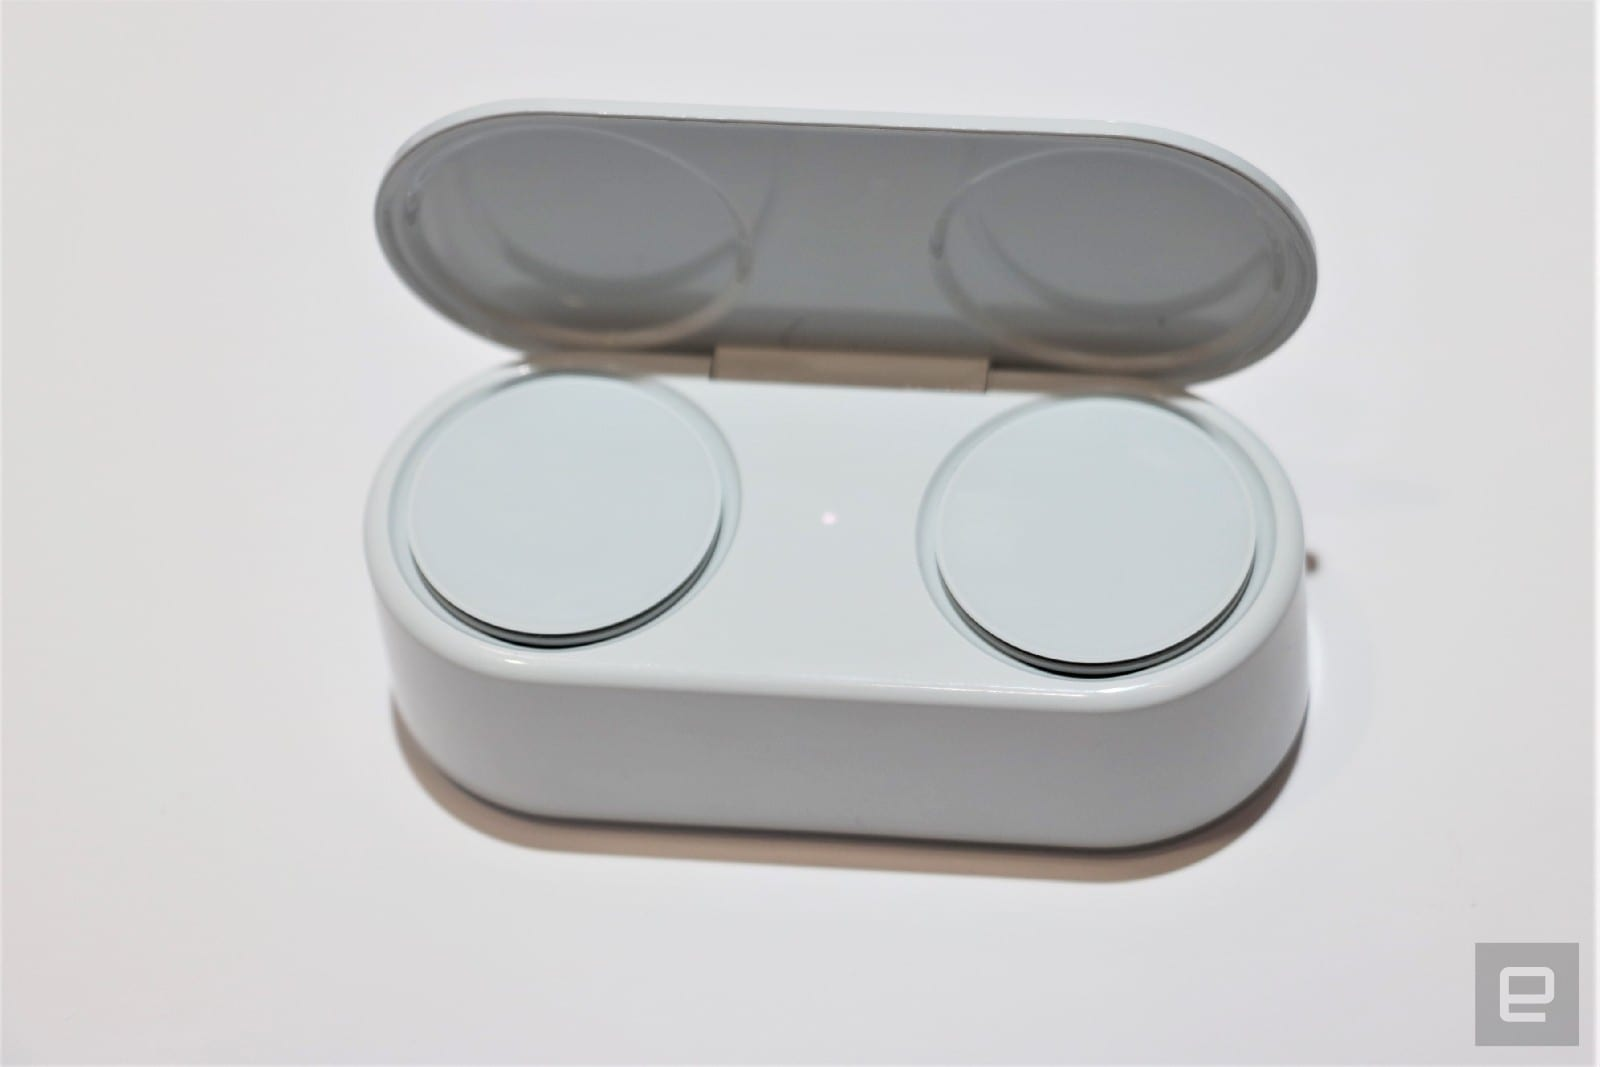 Surface Earbuds hands-on